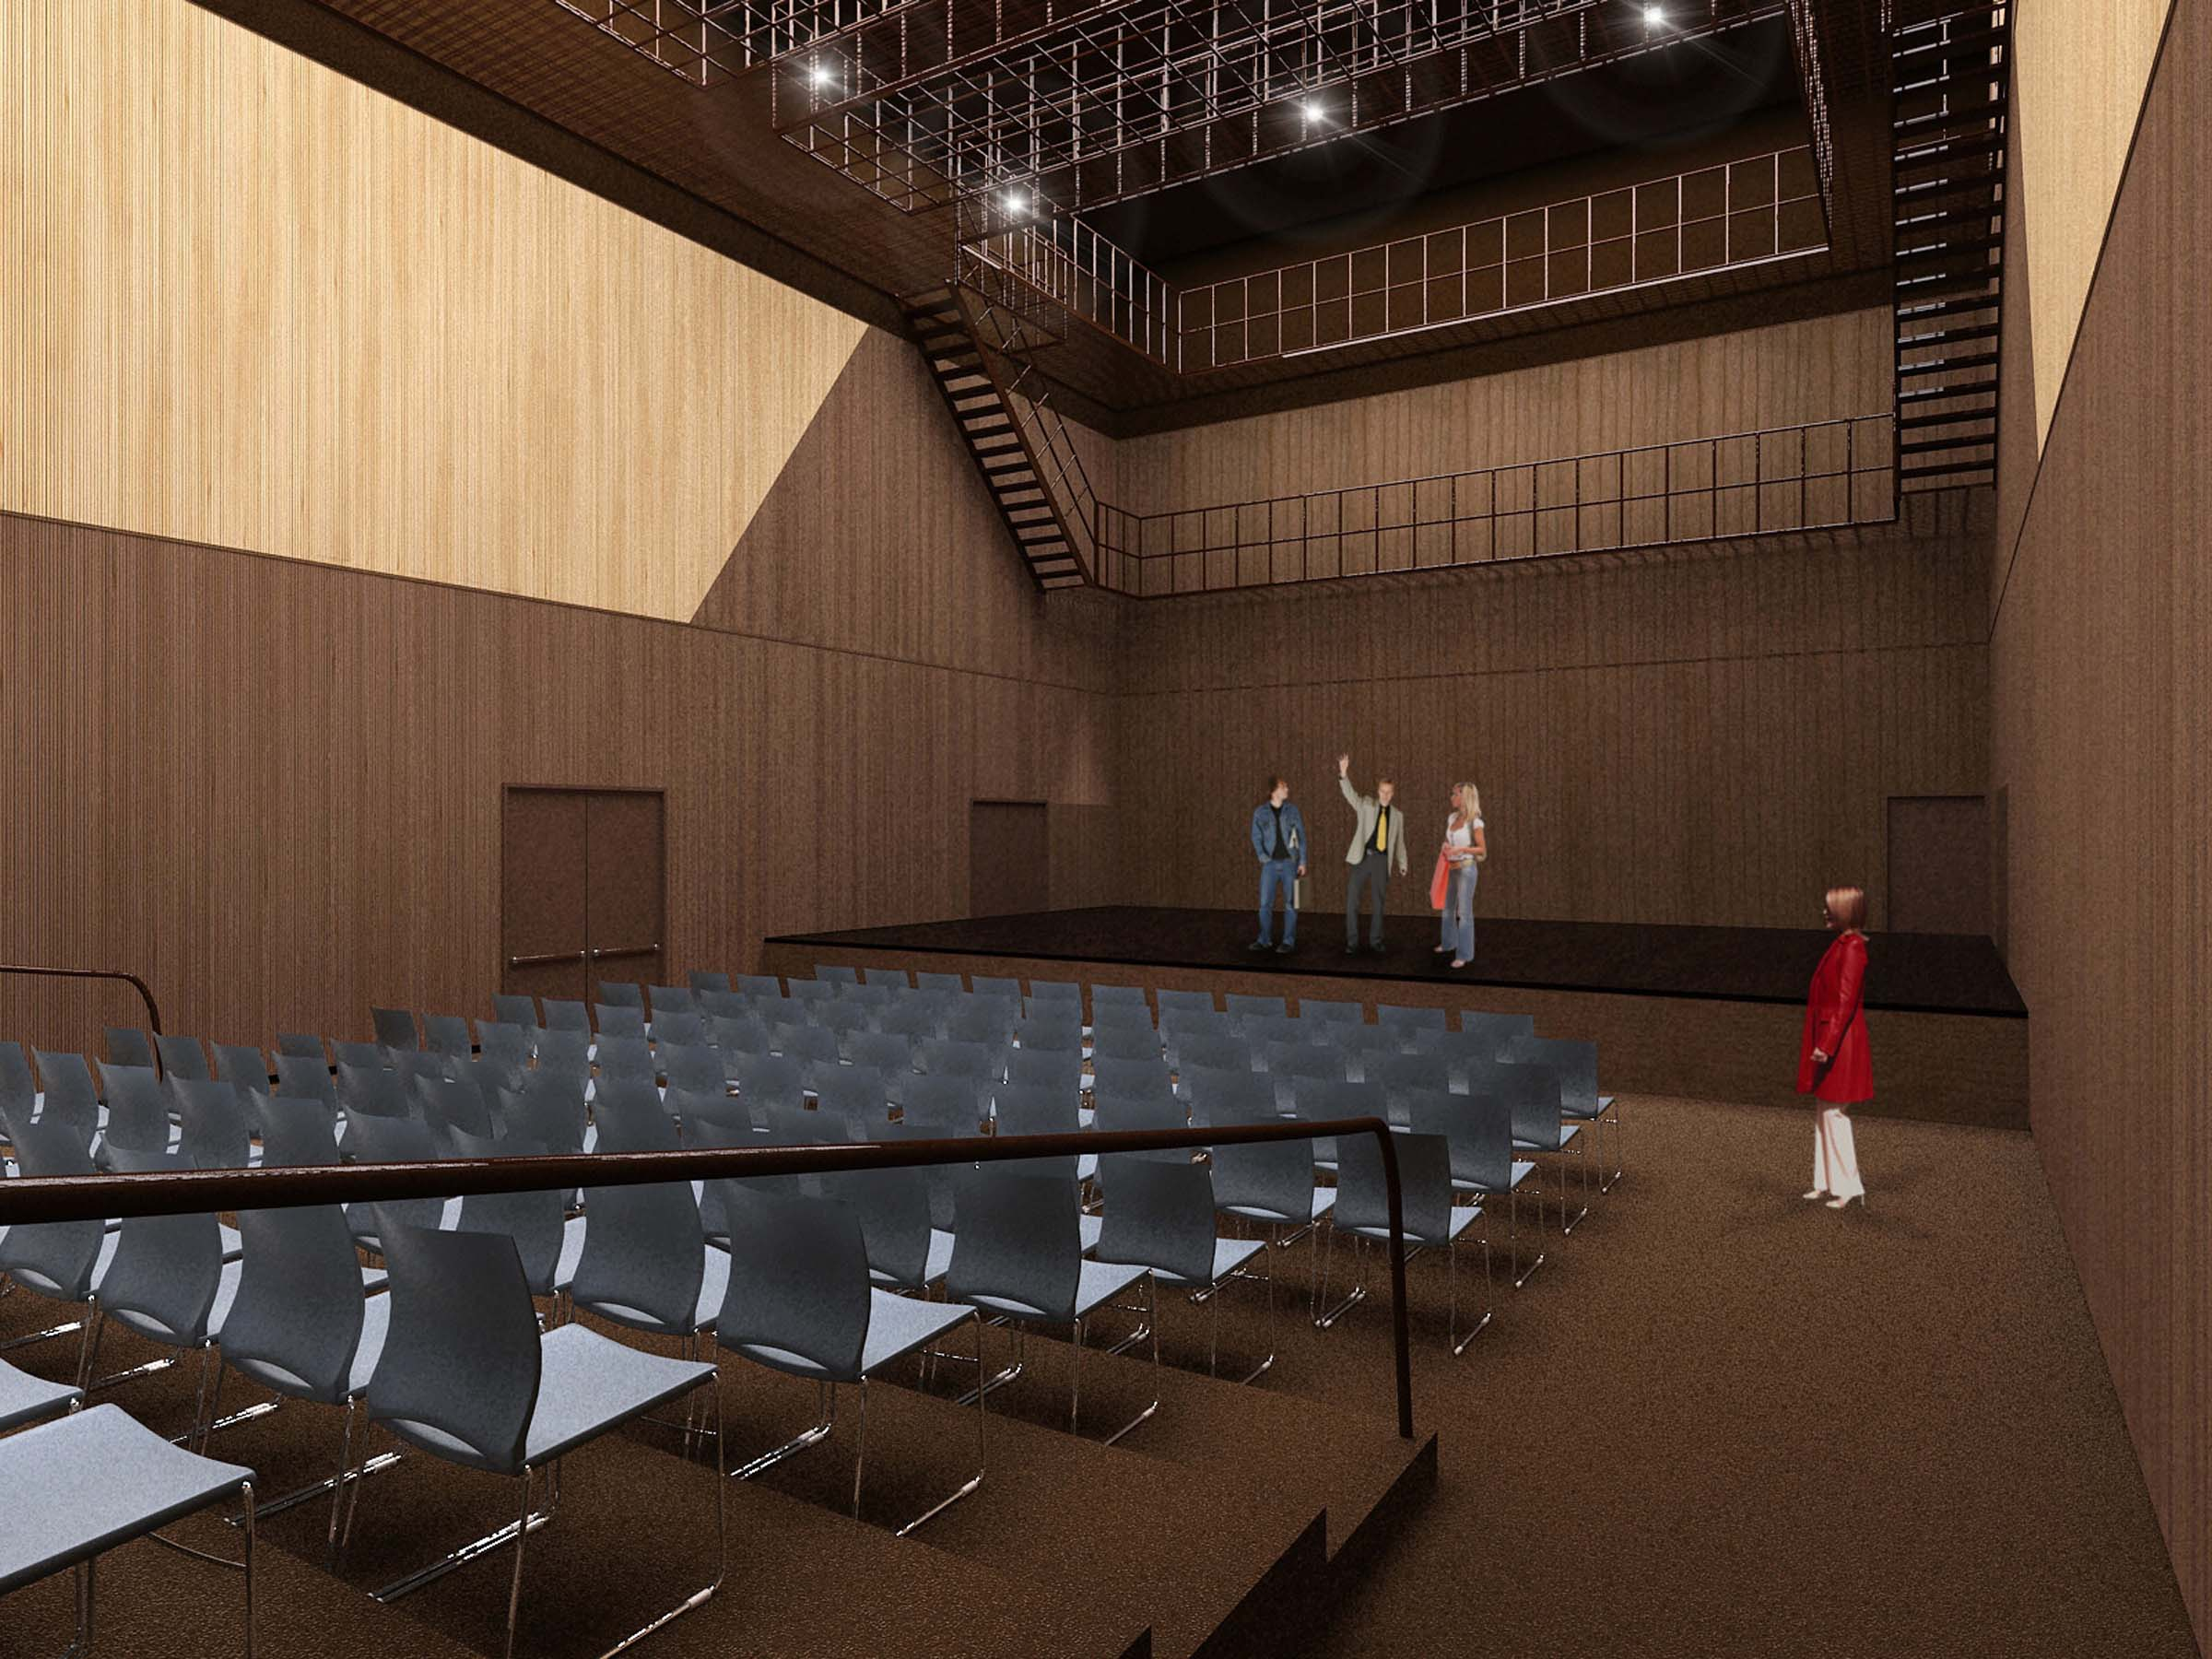 Rendering of Theatre